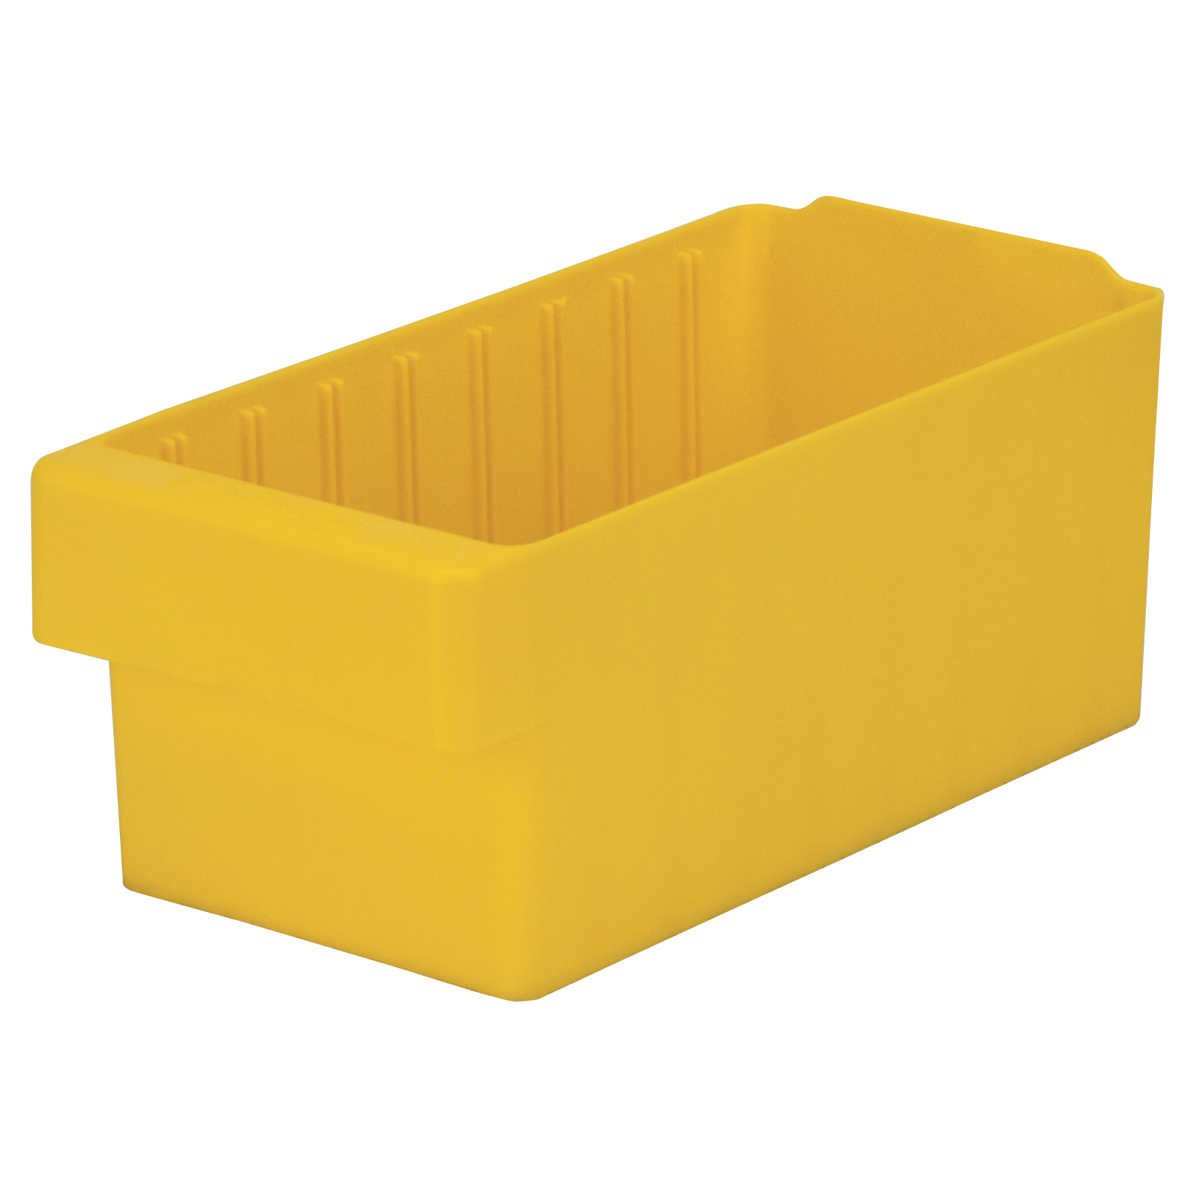 AkroDrawer 11-5/8 x 5-5/8 x 4-5/8, Yellow (31162YEL).  This item sold in carton quantities of 6.